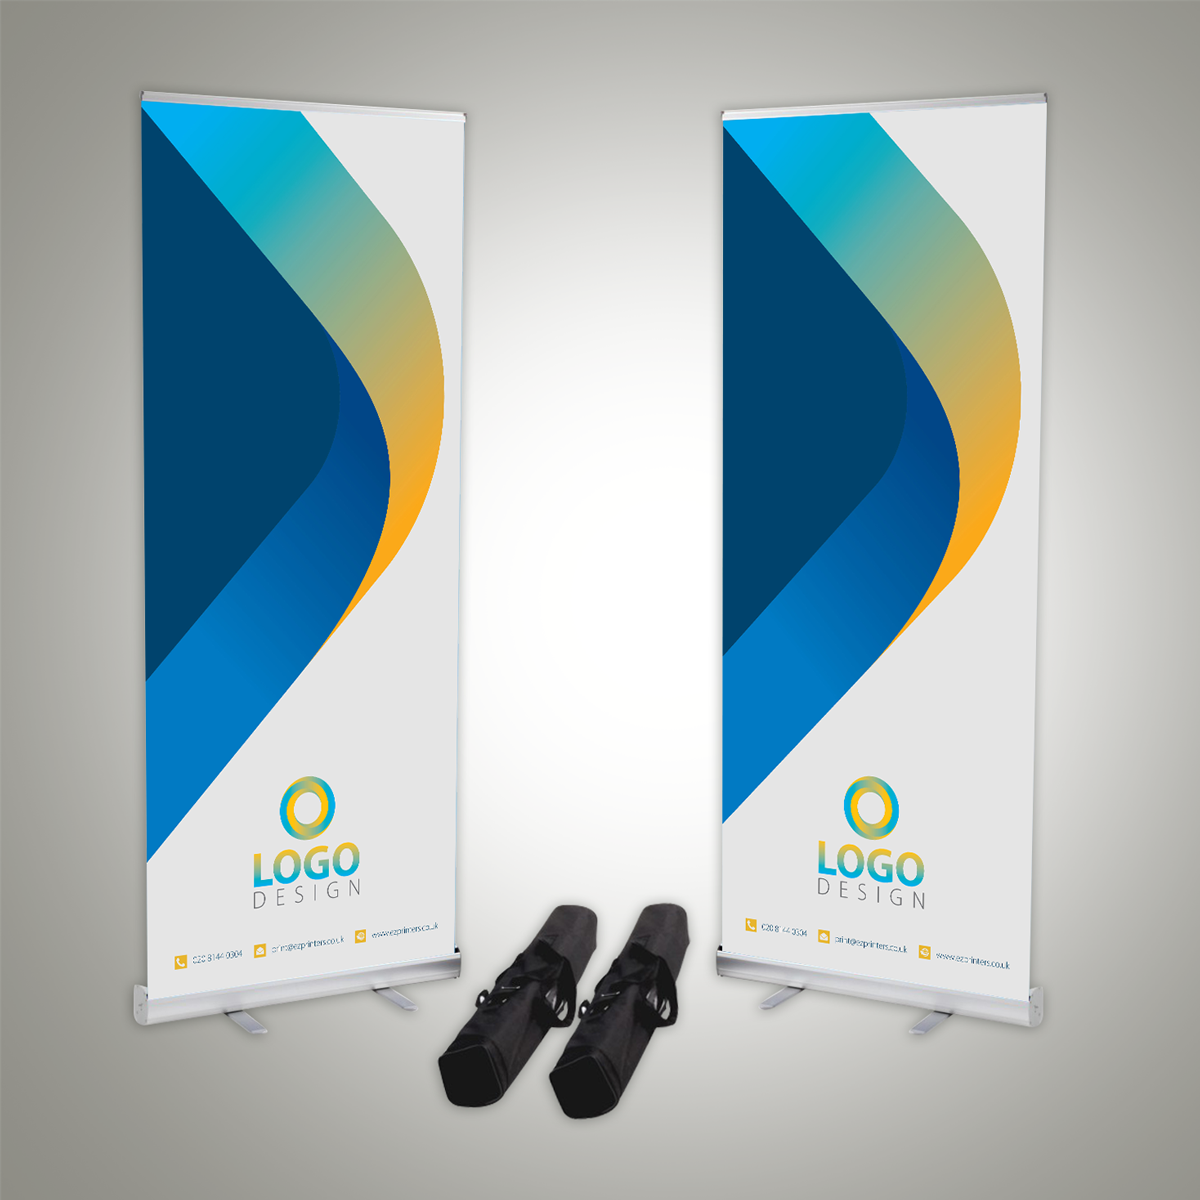 Standard Roller Banners Roll Up Banners Pop Up Banners